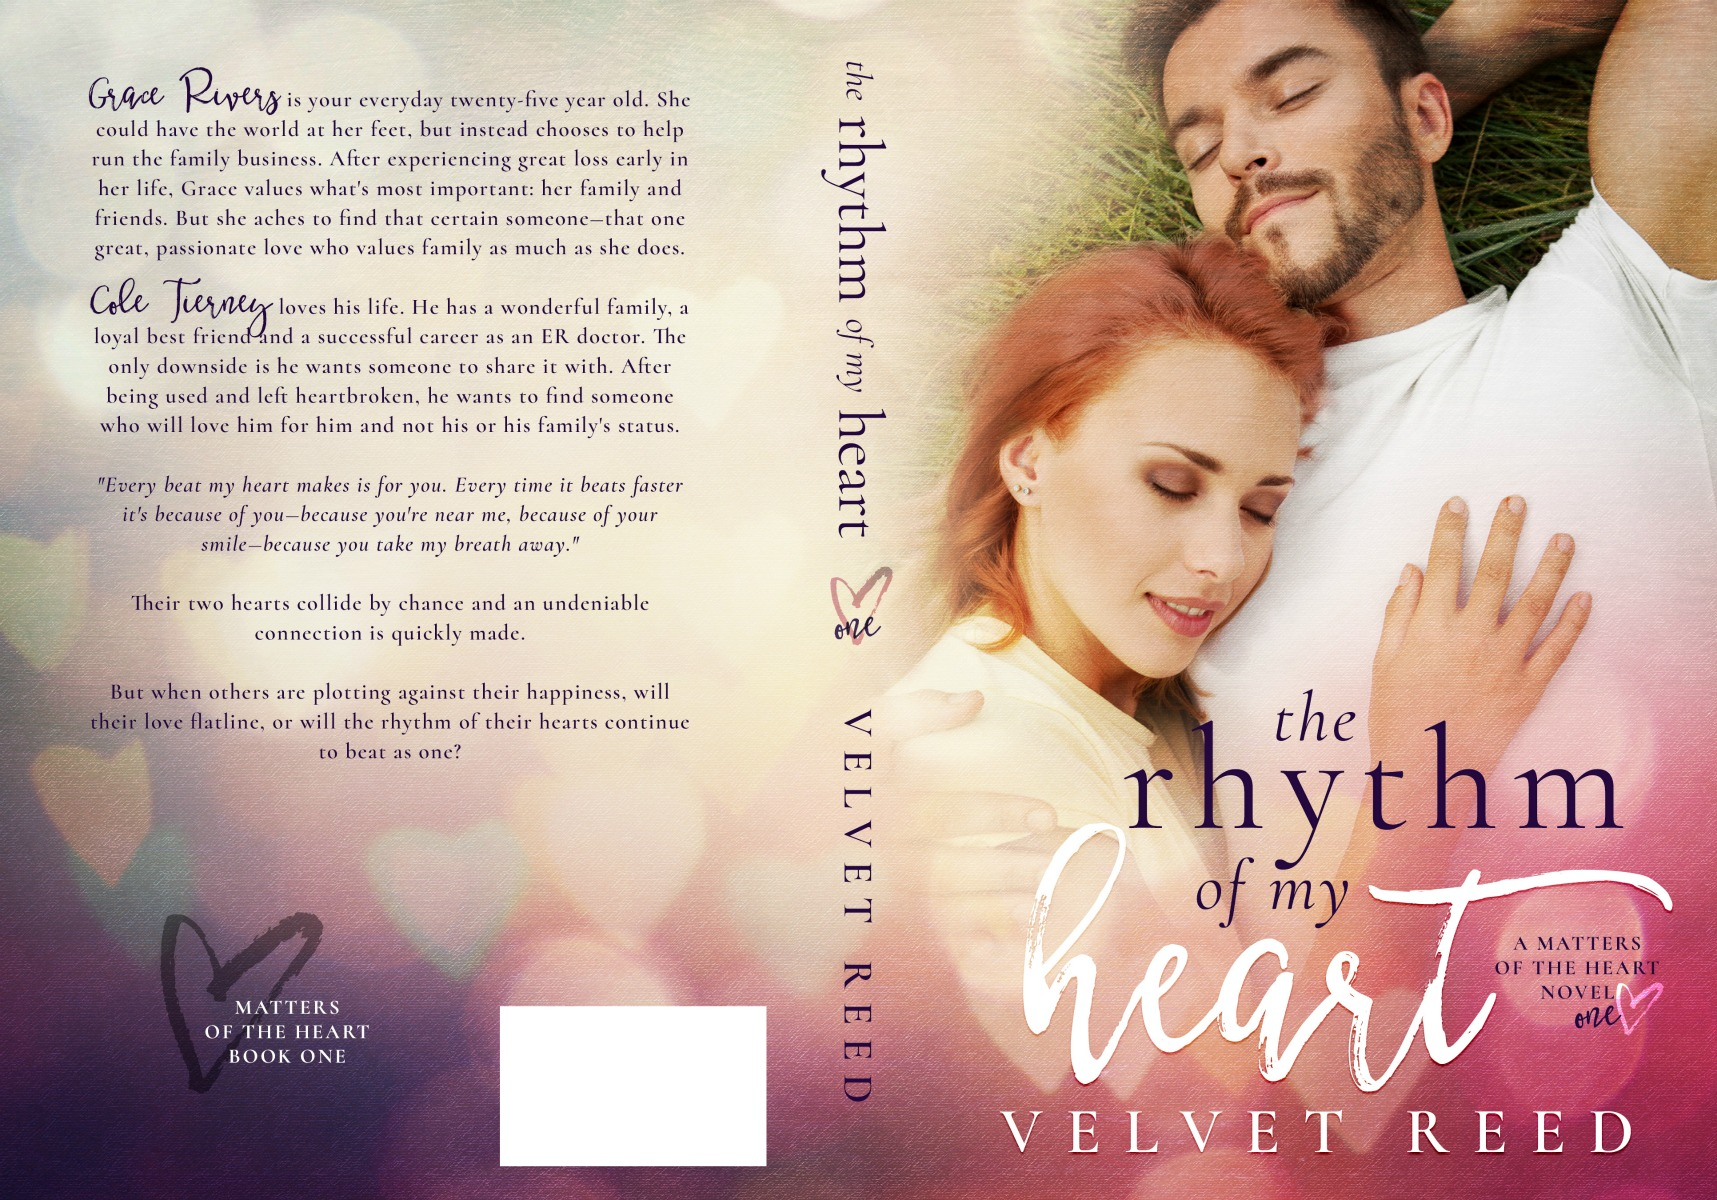 The Rhythm of my Heart Full Jacket